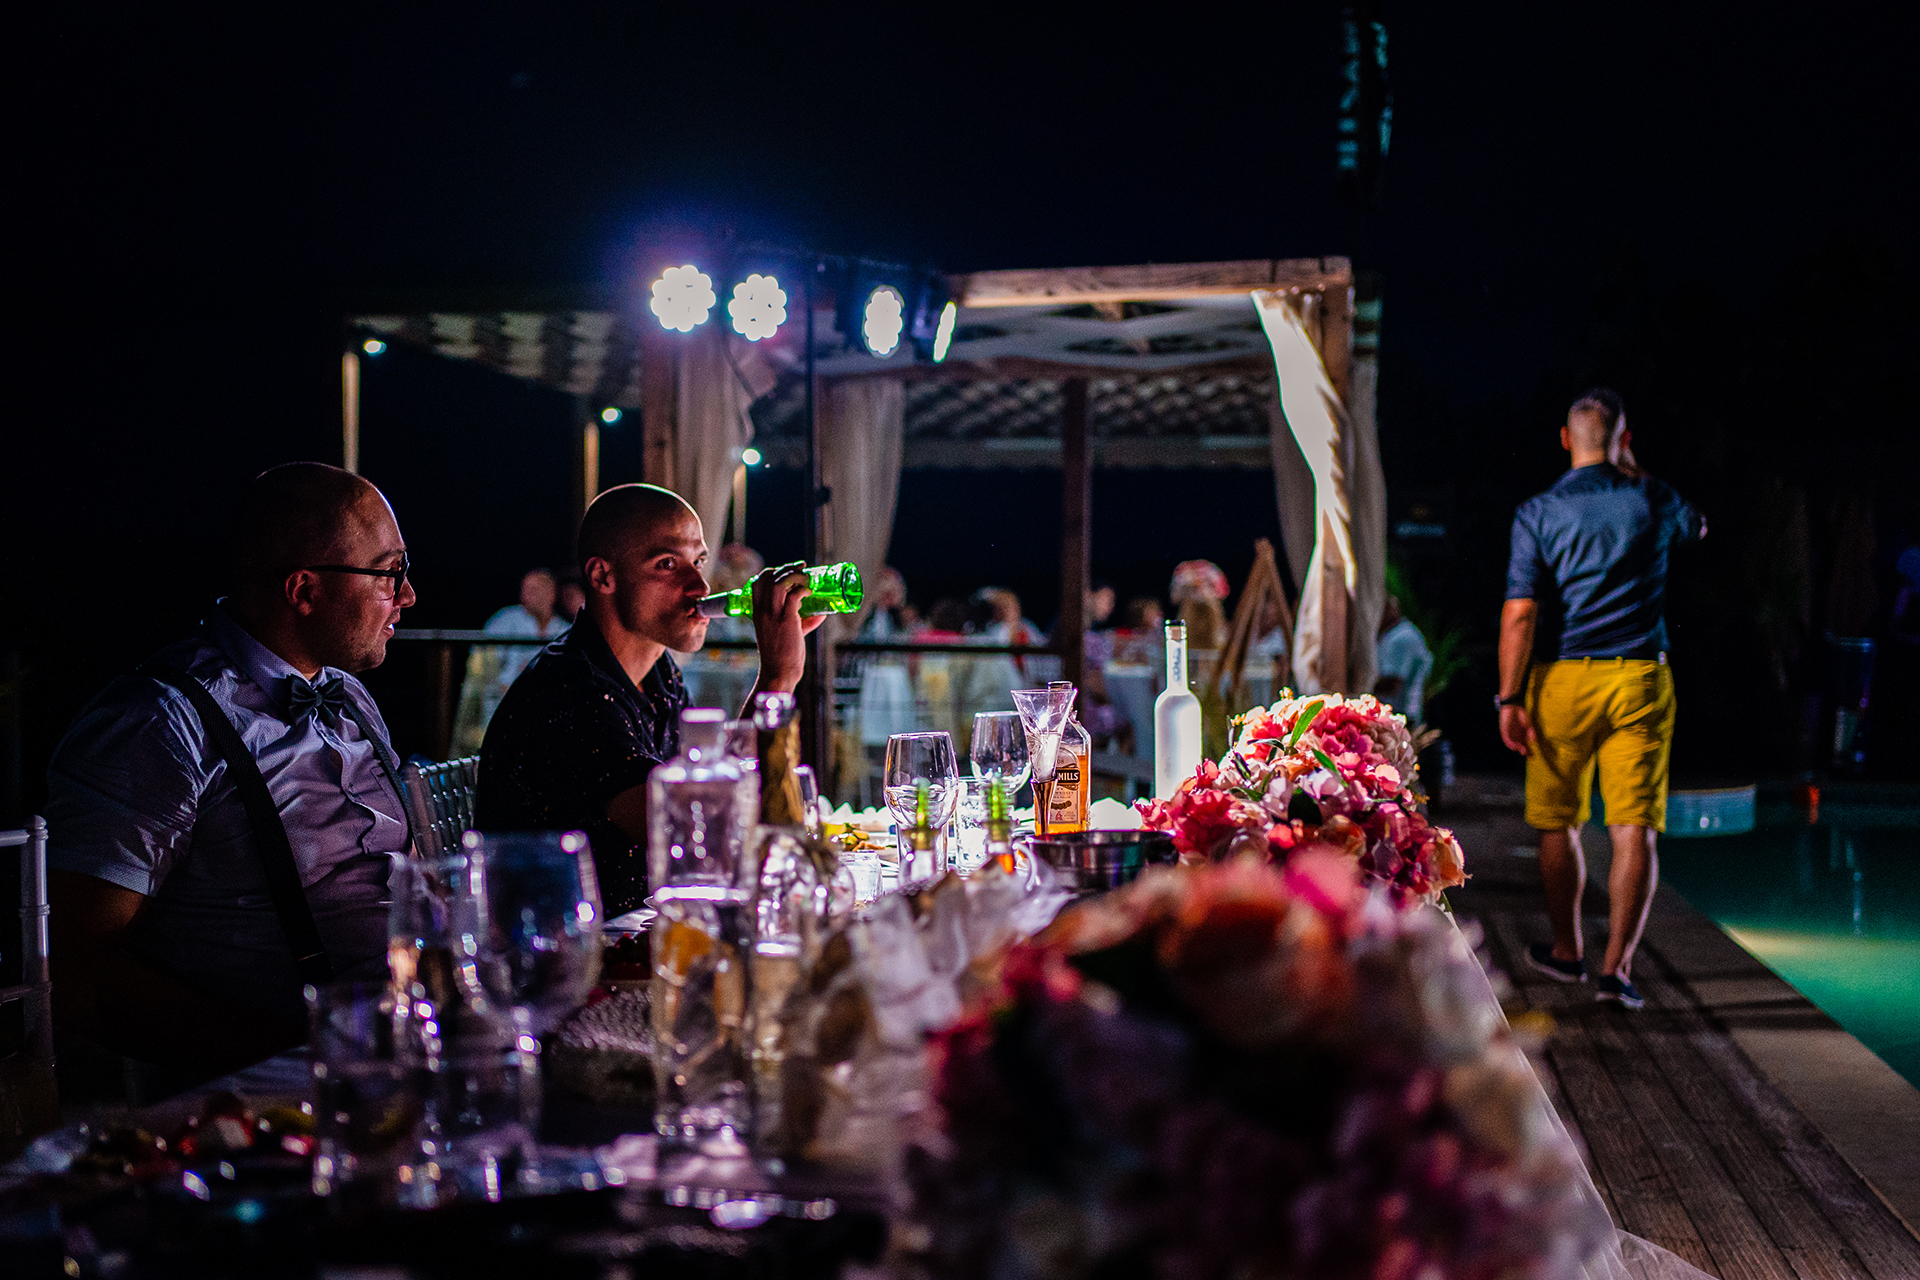 Crazy Pool, Ruse, Bulgaria Elopement Images | the bride and other guests left the dining table after eating to continue the celebration